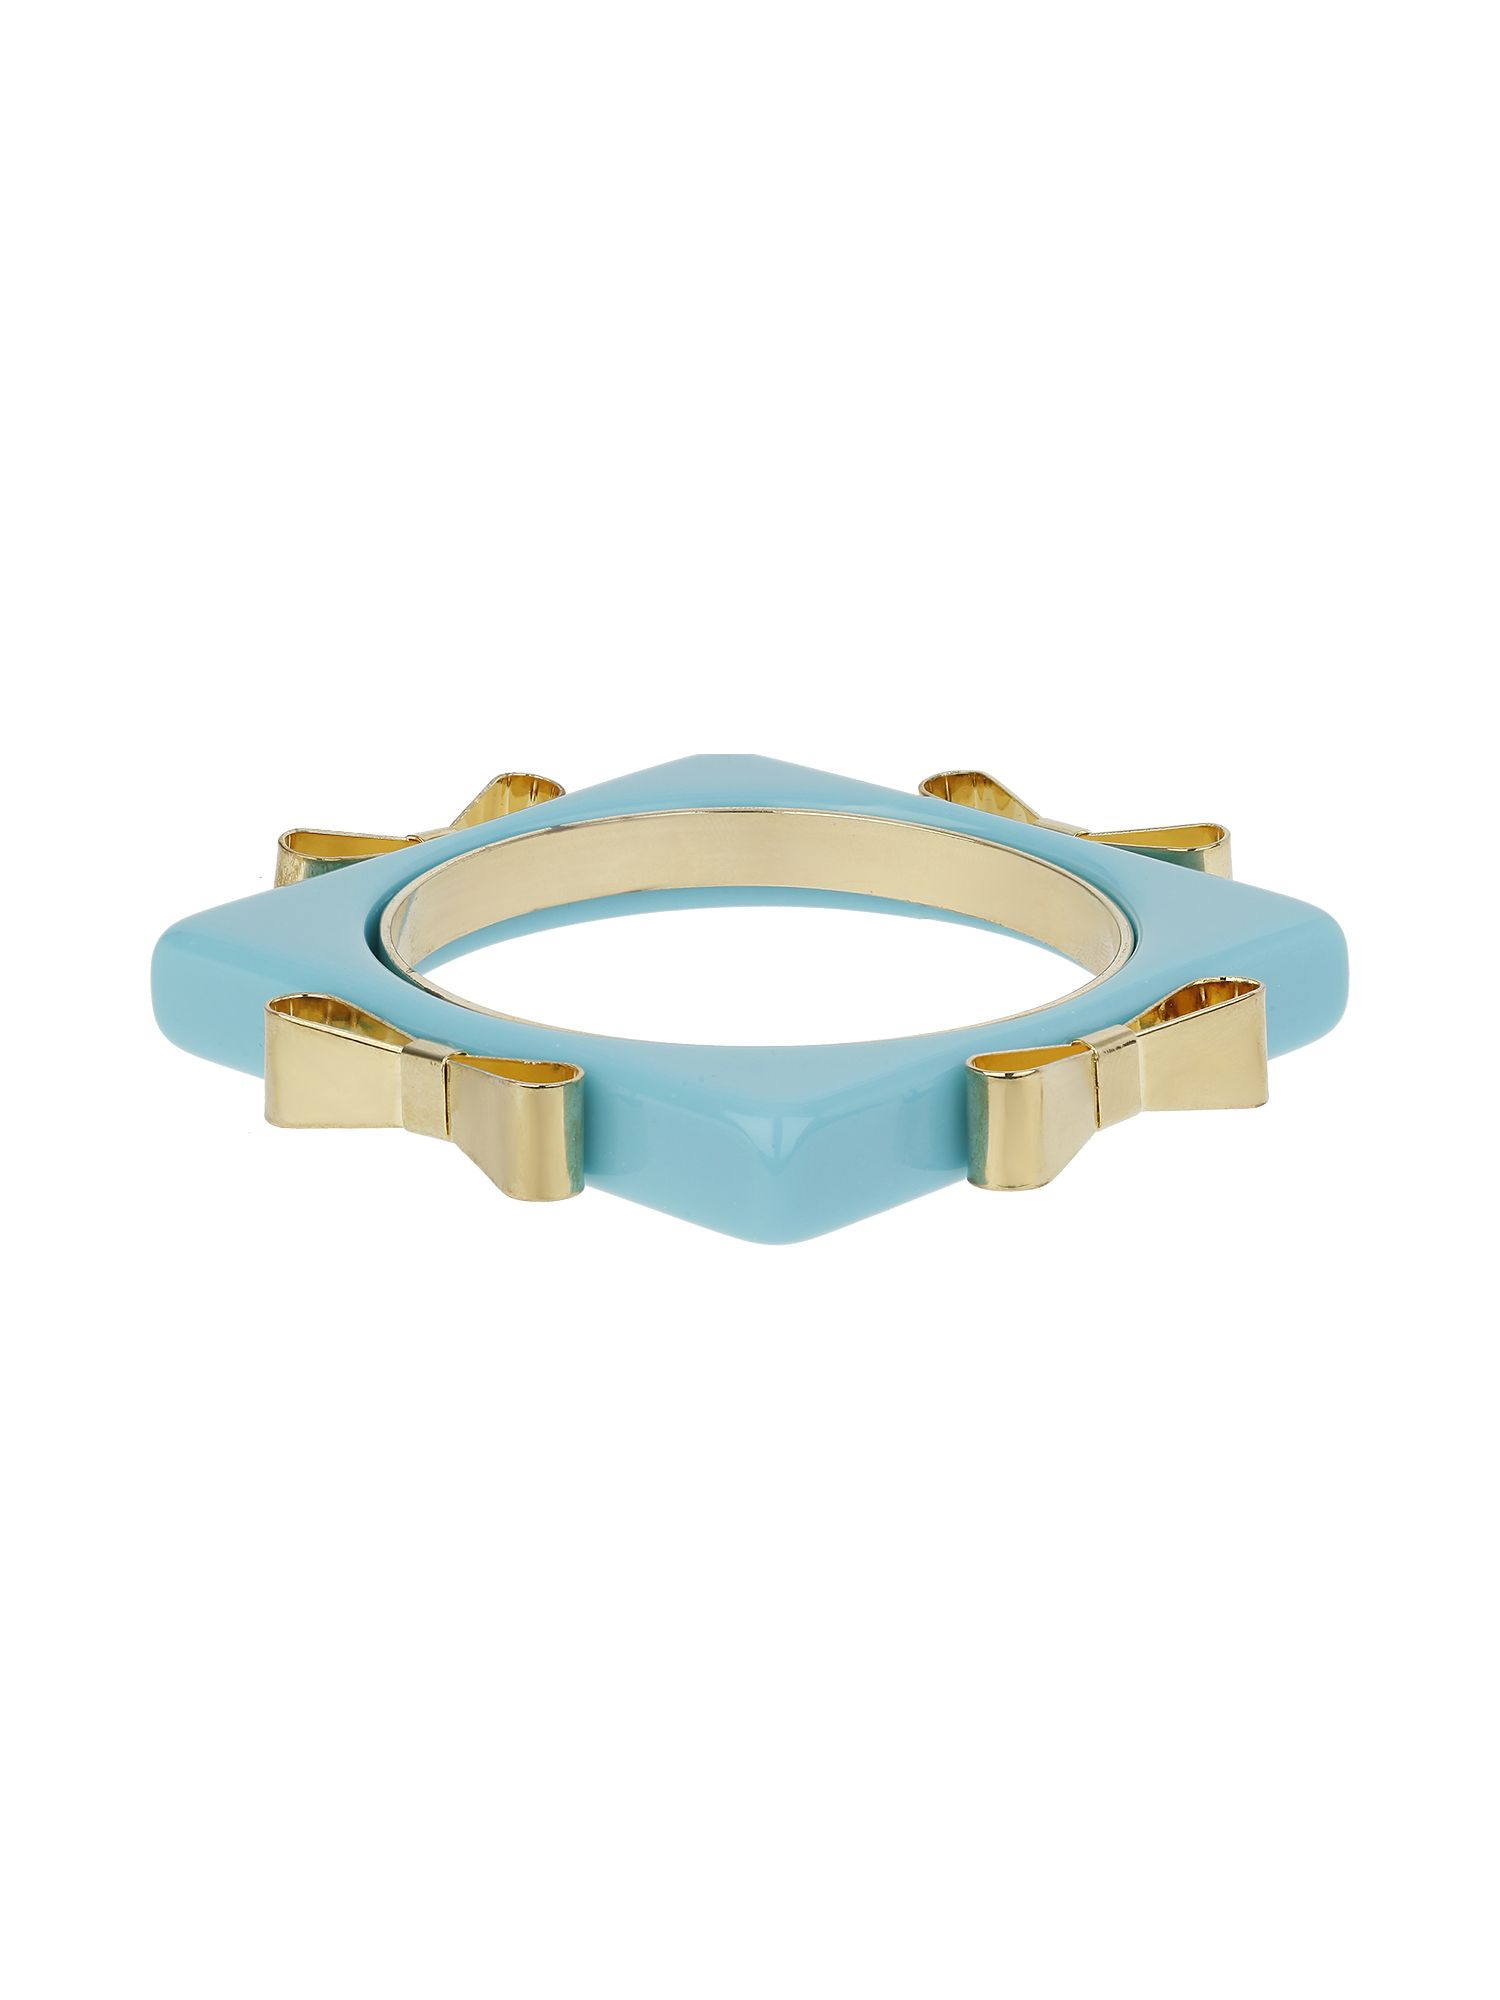 Square bangle with metal bow